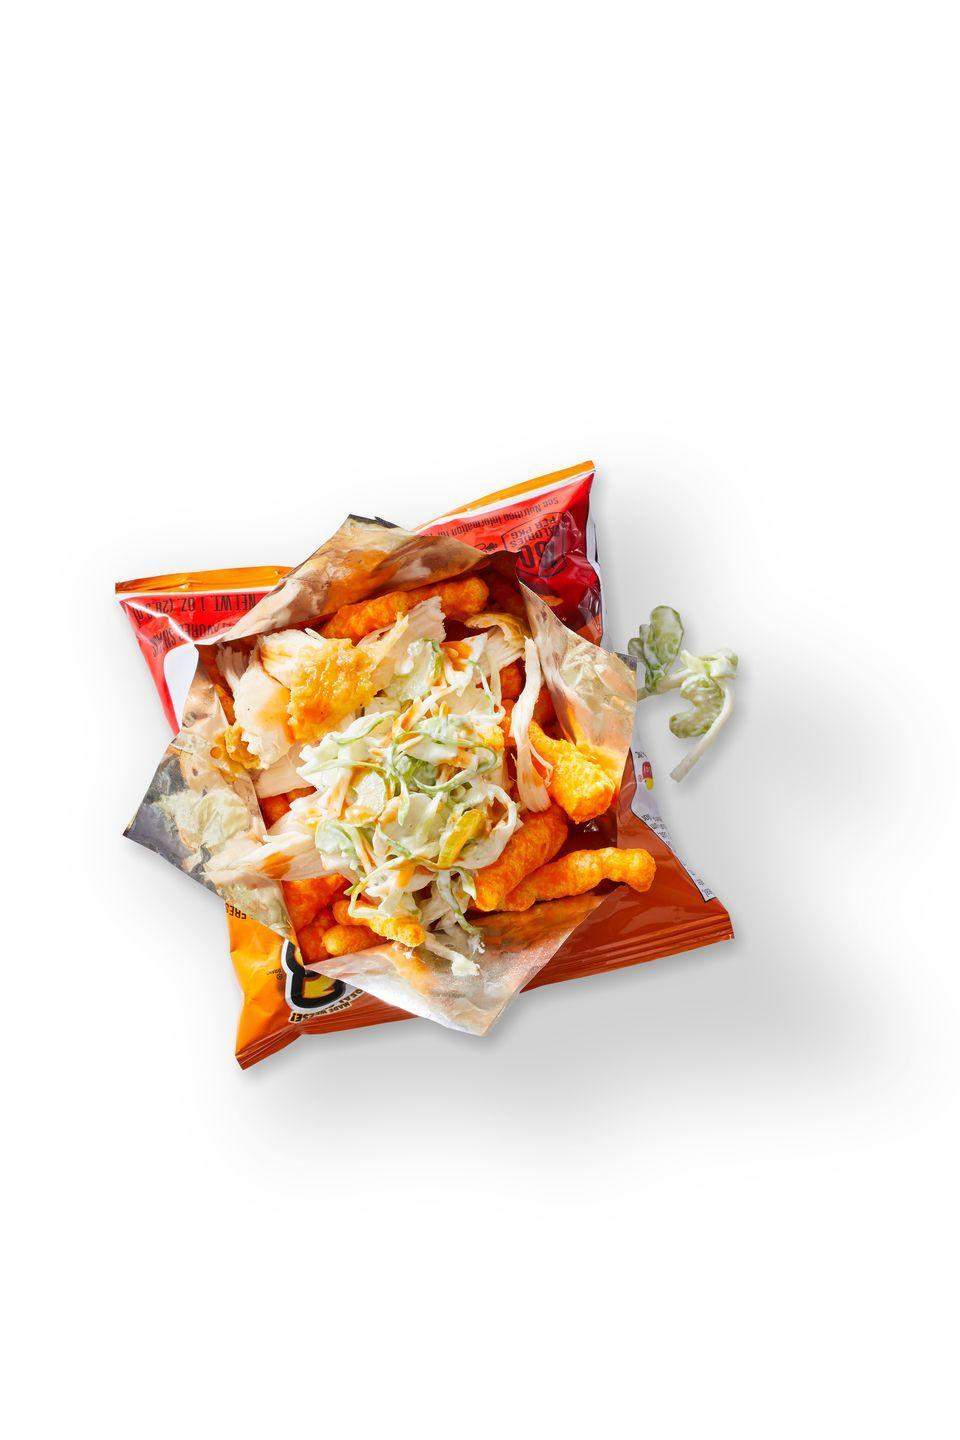 """<p>Turn a bag of Cheetos into a buff-chick snack with shredded chicken, hot sauce, and blue cheese. You'll want more than one.</p><p><em><a href=""""https://www.goodhousekeeping.com/food-recipes/a35182676/red-hot-and-blue-chicken-snack-bag-recipe/"""" rel=""""nofollow noopener"""" target=""""_blank"""" data-ylk=""""slk:Get the recipe for Red Hot and Blue Chicken Snack Bag »"""" class=""""link rapid-noclick-resp"""">Get the recipe for Red Hot and Blue Chicken Snack Bag »</a></em></p>"""